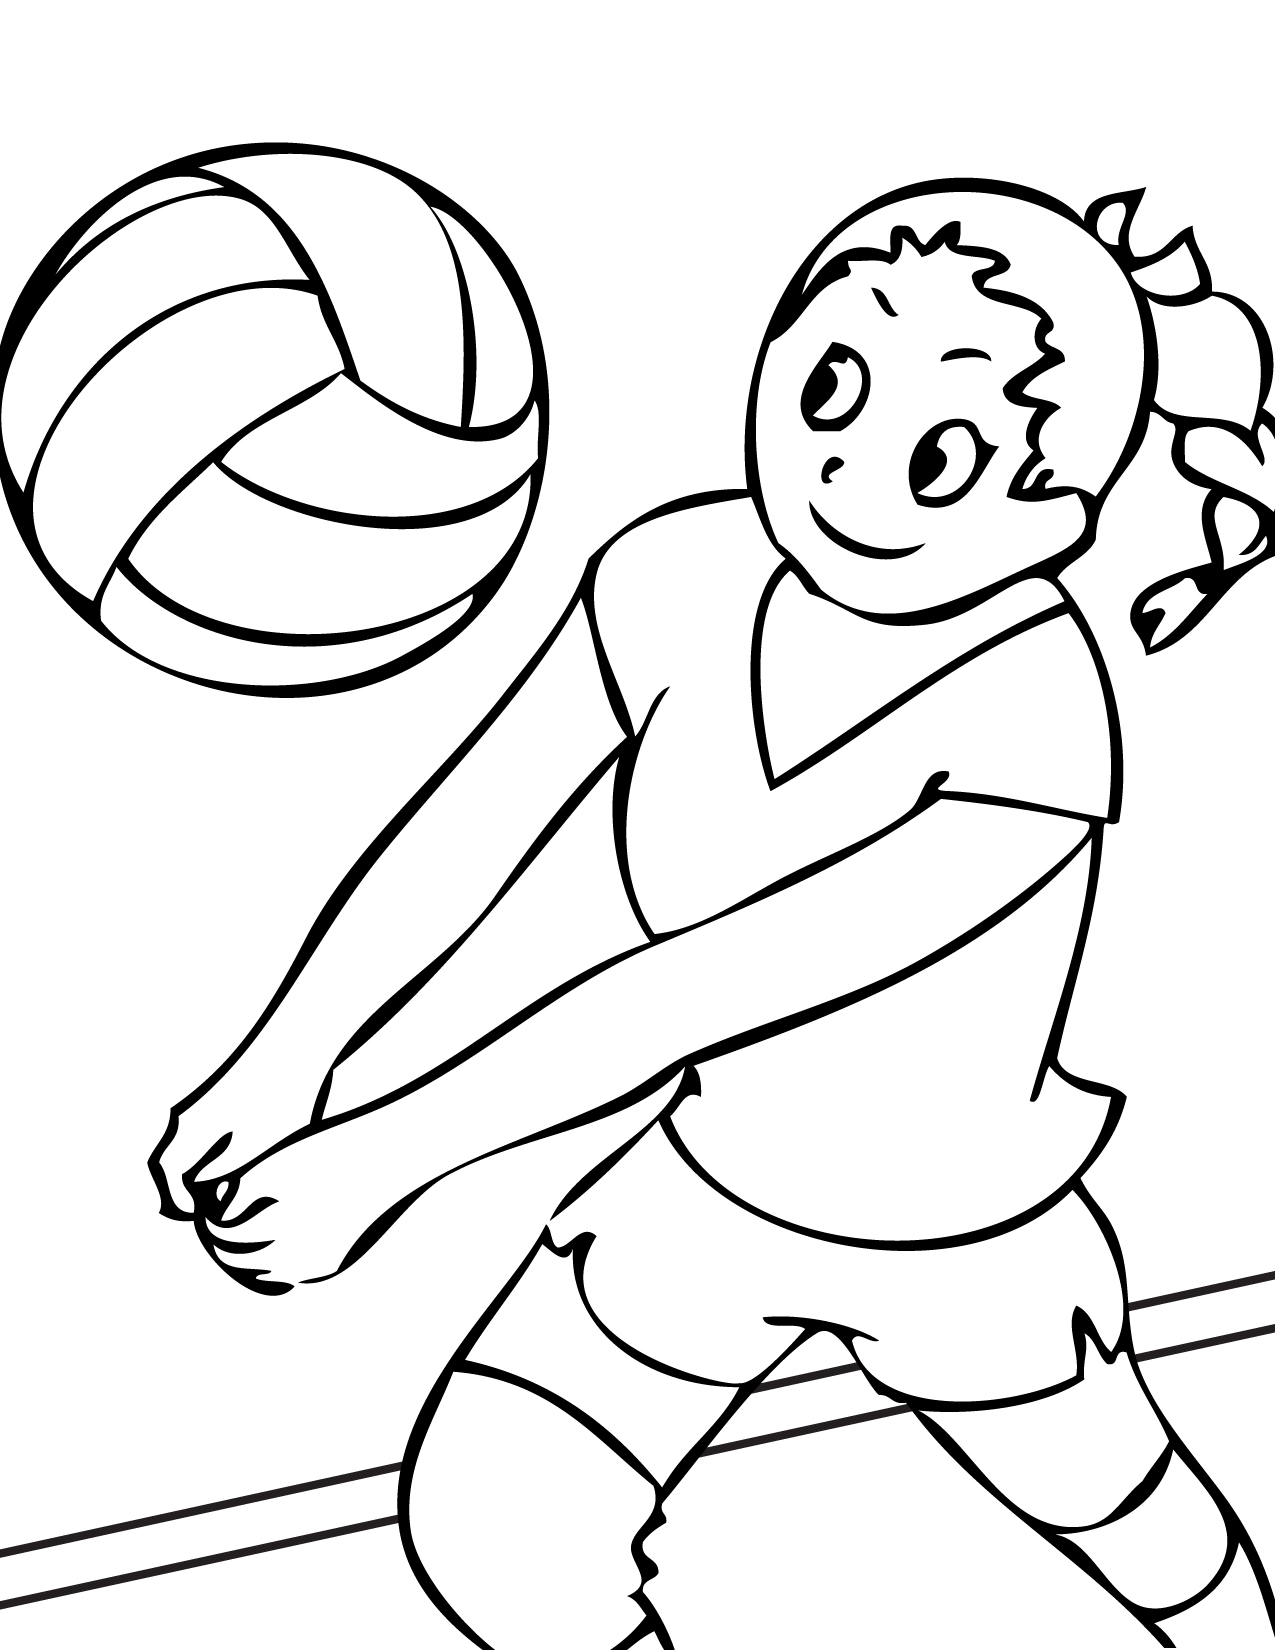 1275x1650 Free Printable Volleyball Coloring Pages For Kids